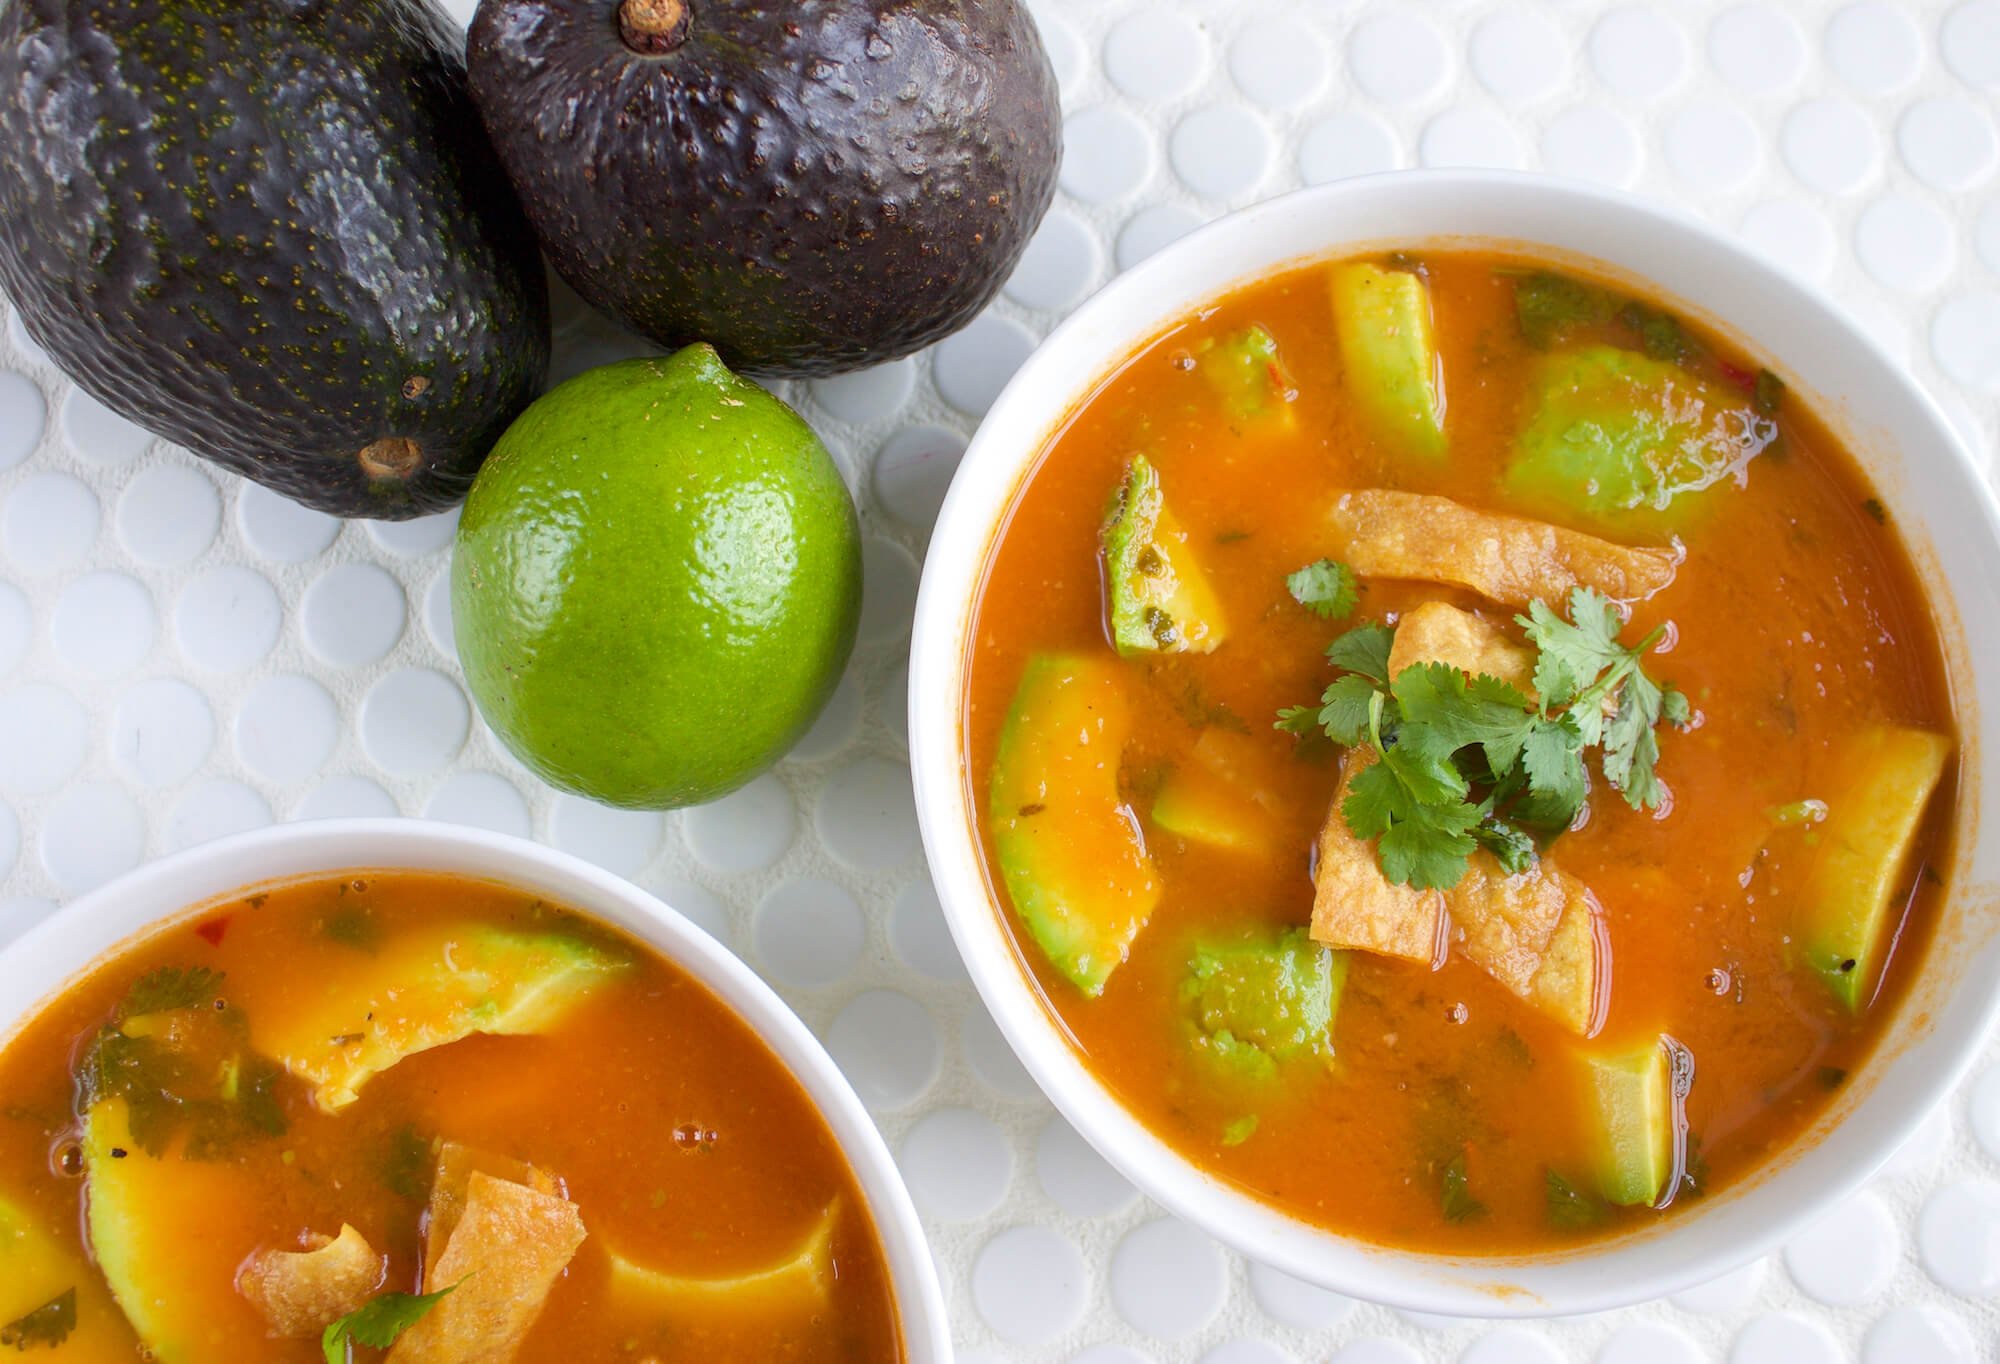 Avocado and Tortilla Soup